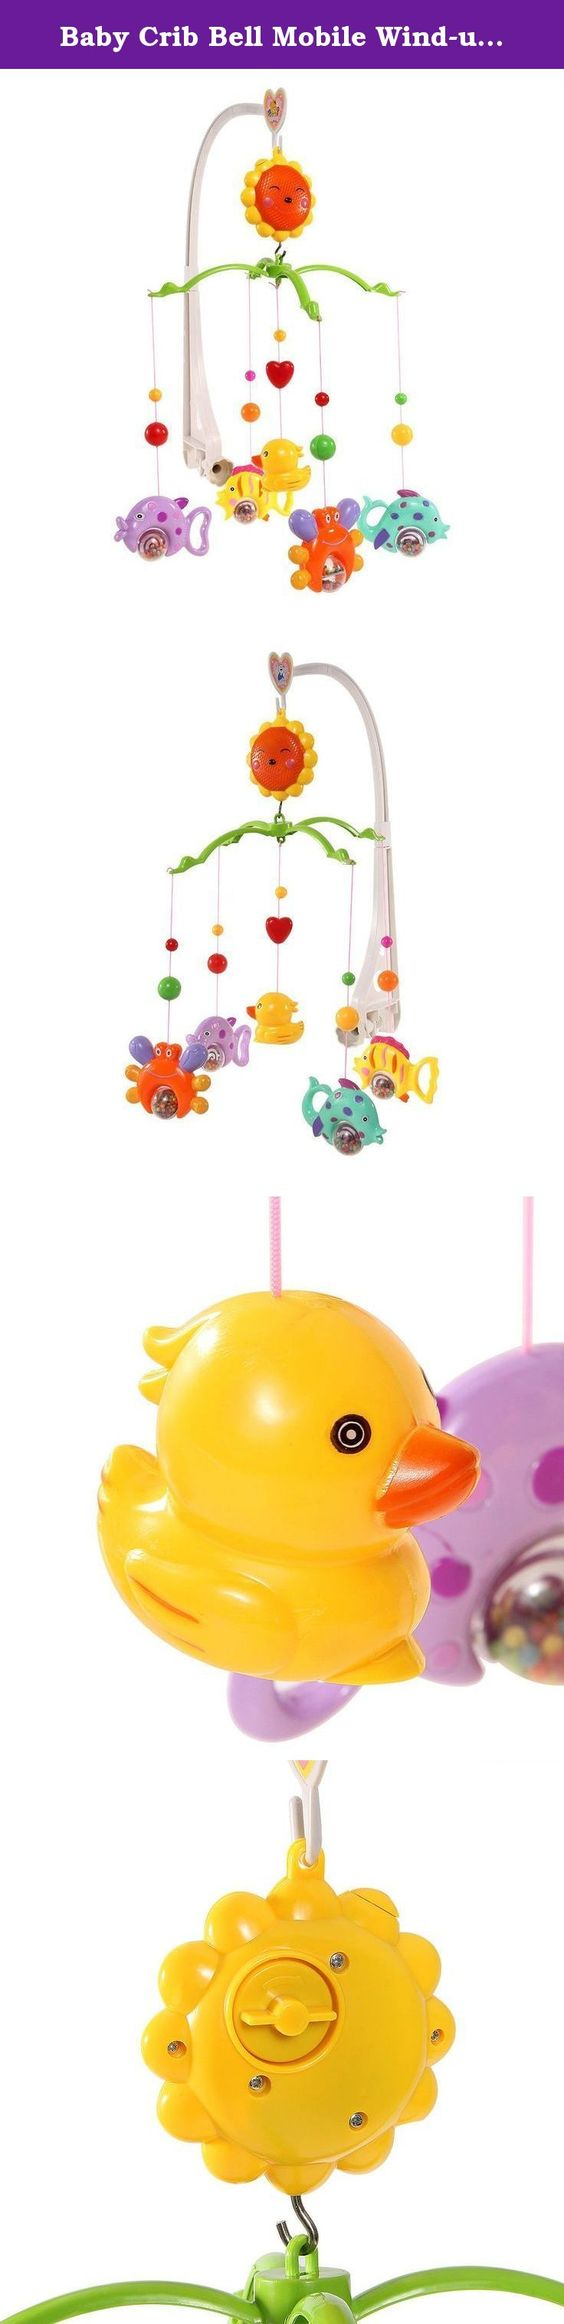 Best crib toys your baby - Baby Crib Bell Mobile Wind Up Music Box Cute Bed Toy Cartoon Gift Nursery